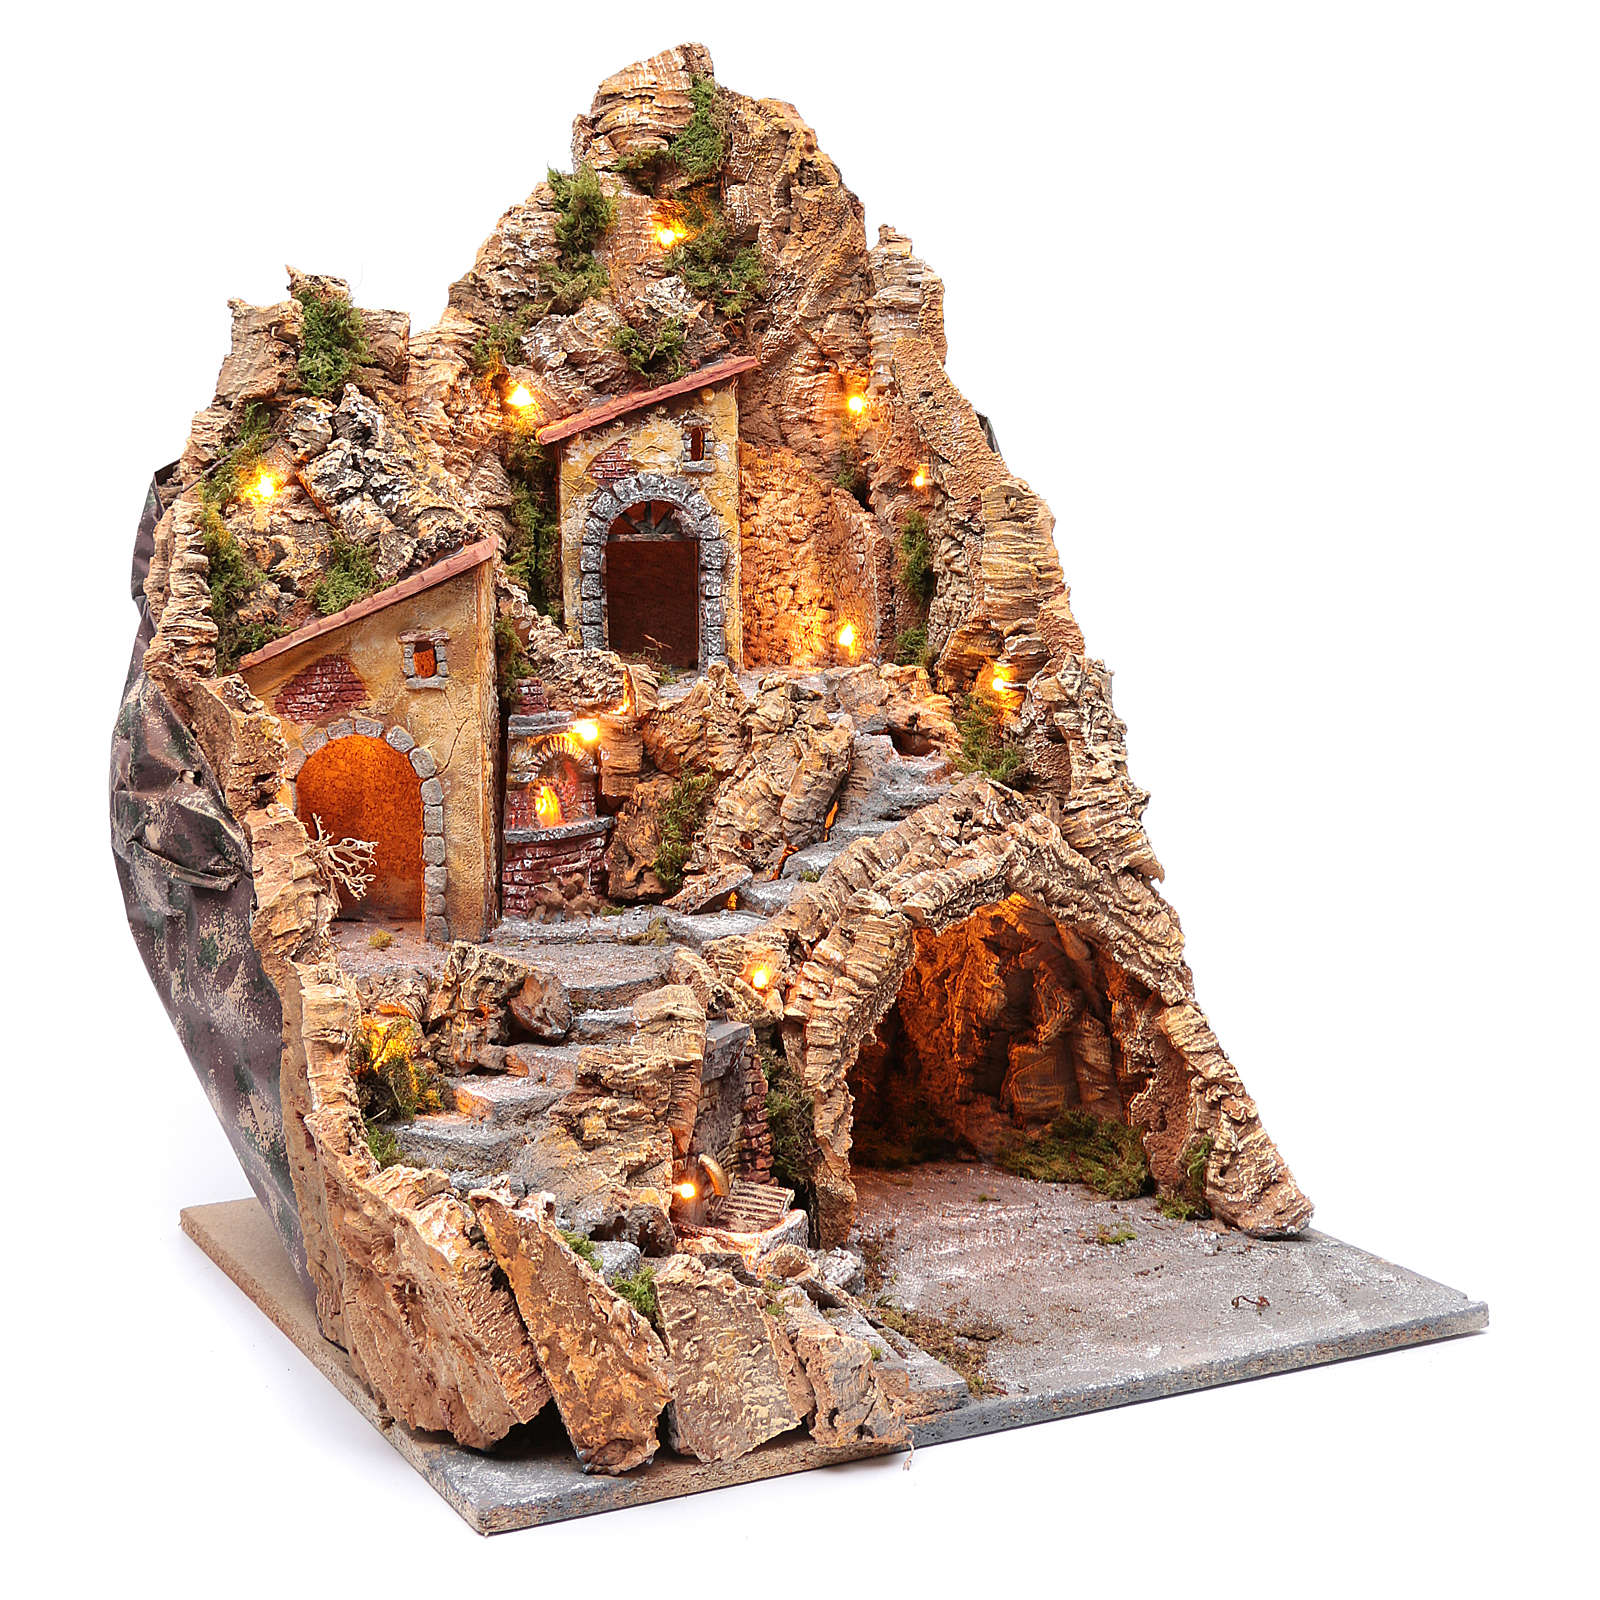 Nativity scene setting with lights and oven 60X45X45 cm 4